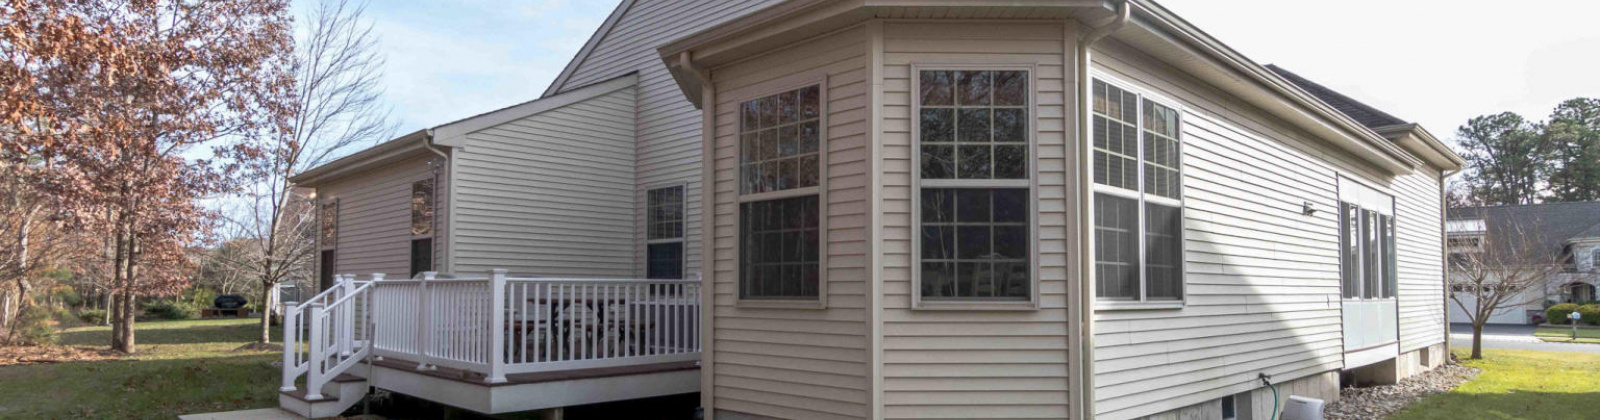 9 Chatham Street, Barnegat, New Jersey 08005, 2 Bedrooms Bedrooms, ,3 BathroomsBathrooms,55 Plus Community,For Sale, Chatham Street,1008